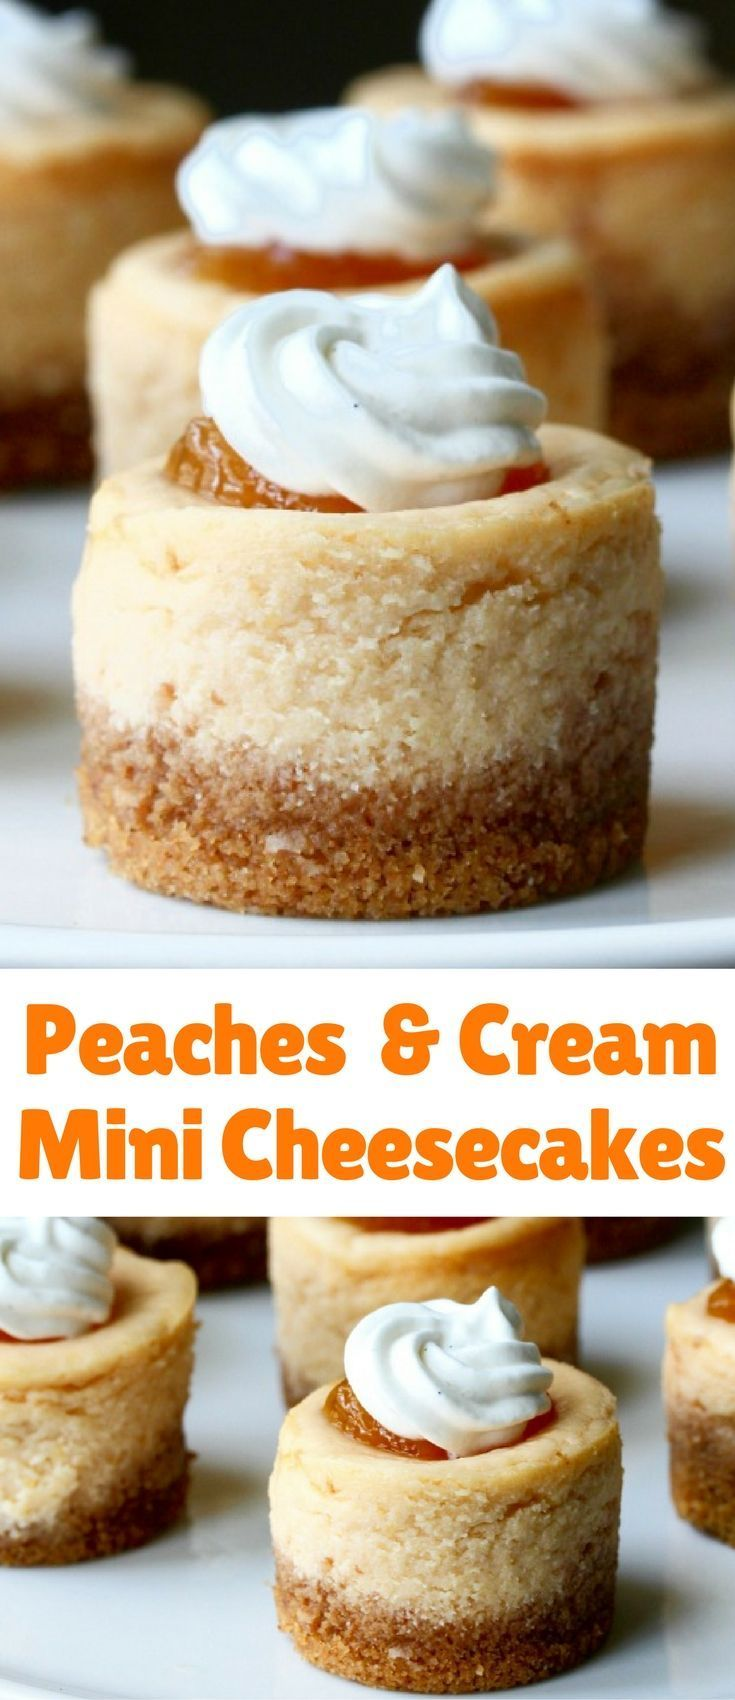 These peaches and cream mini cheesecakes are also creamy and subtly flavored with peach puree. I topped them with a dab of peach jam and a swirl of whipped cream.